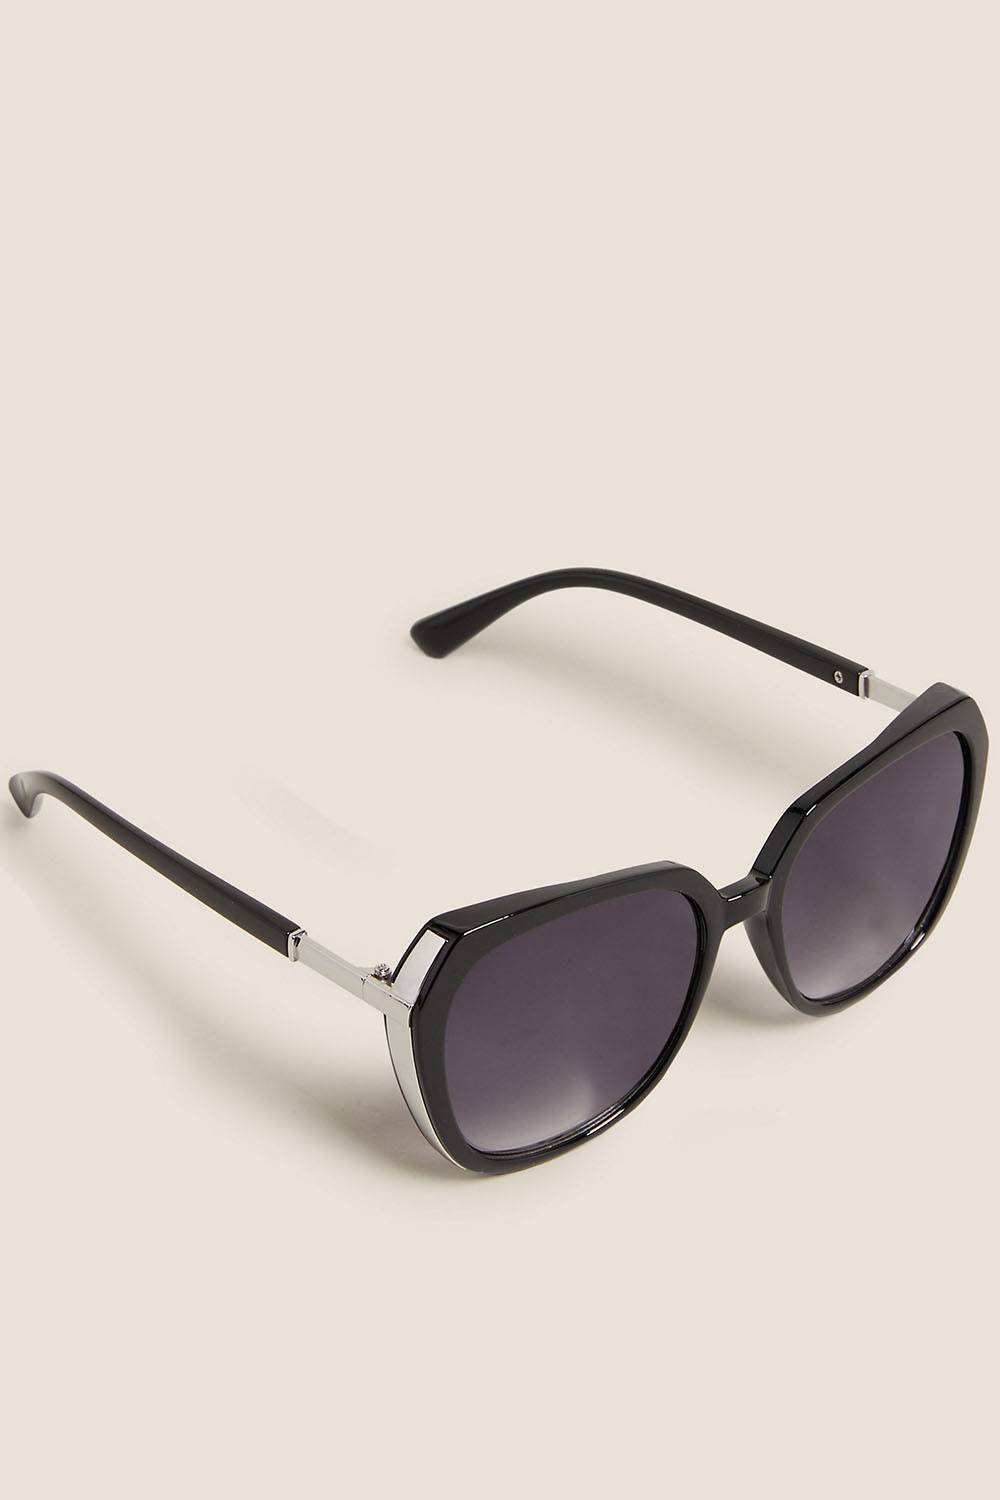 marks spencer cheap sustainable sunglasses